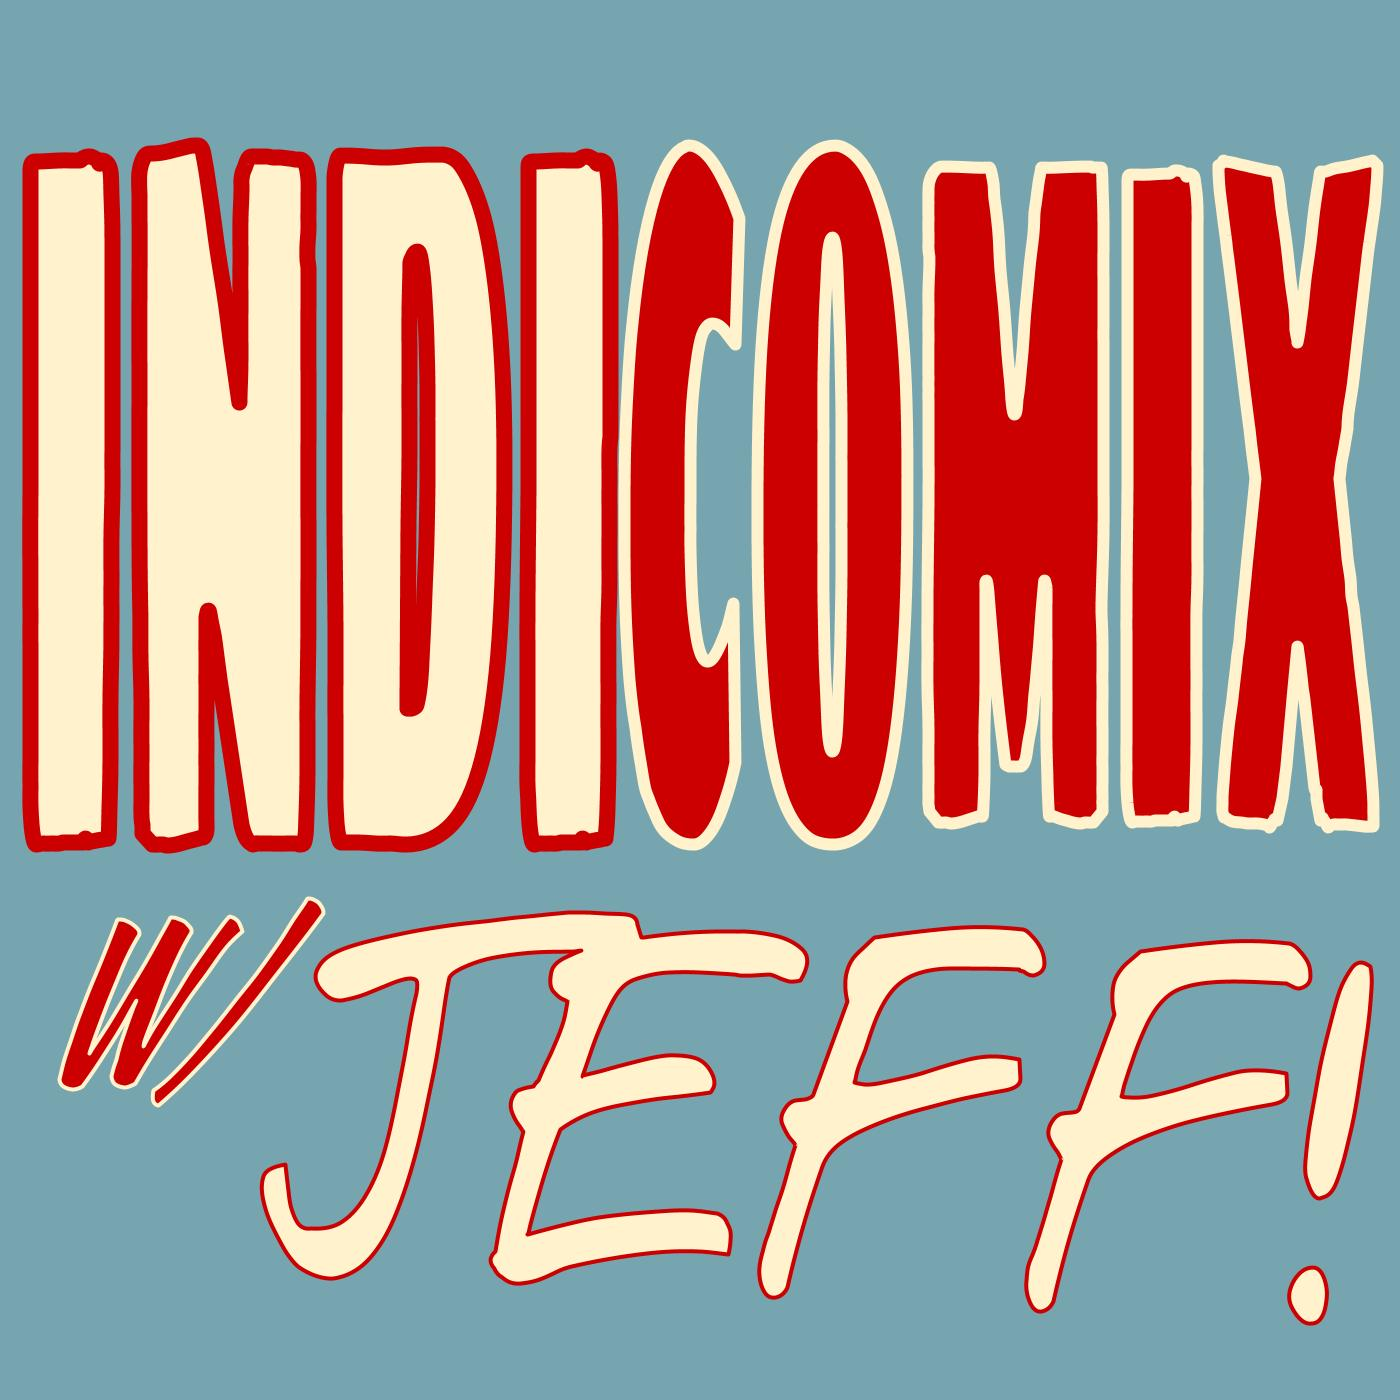 IndiComix w/ Jeff Ep. 16: 2000 A.D. and Carlos Ezquerra